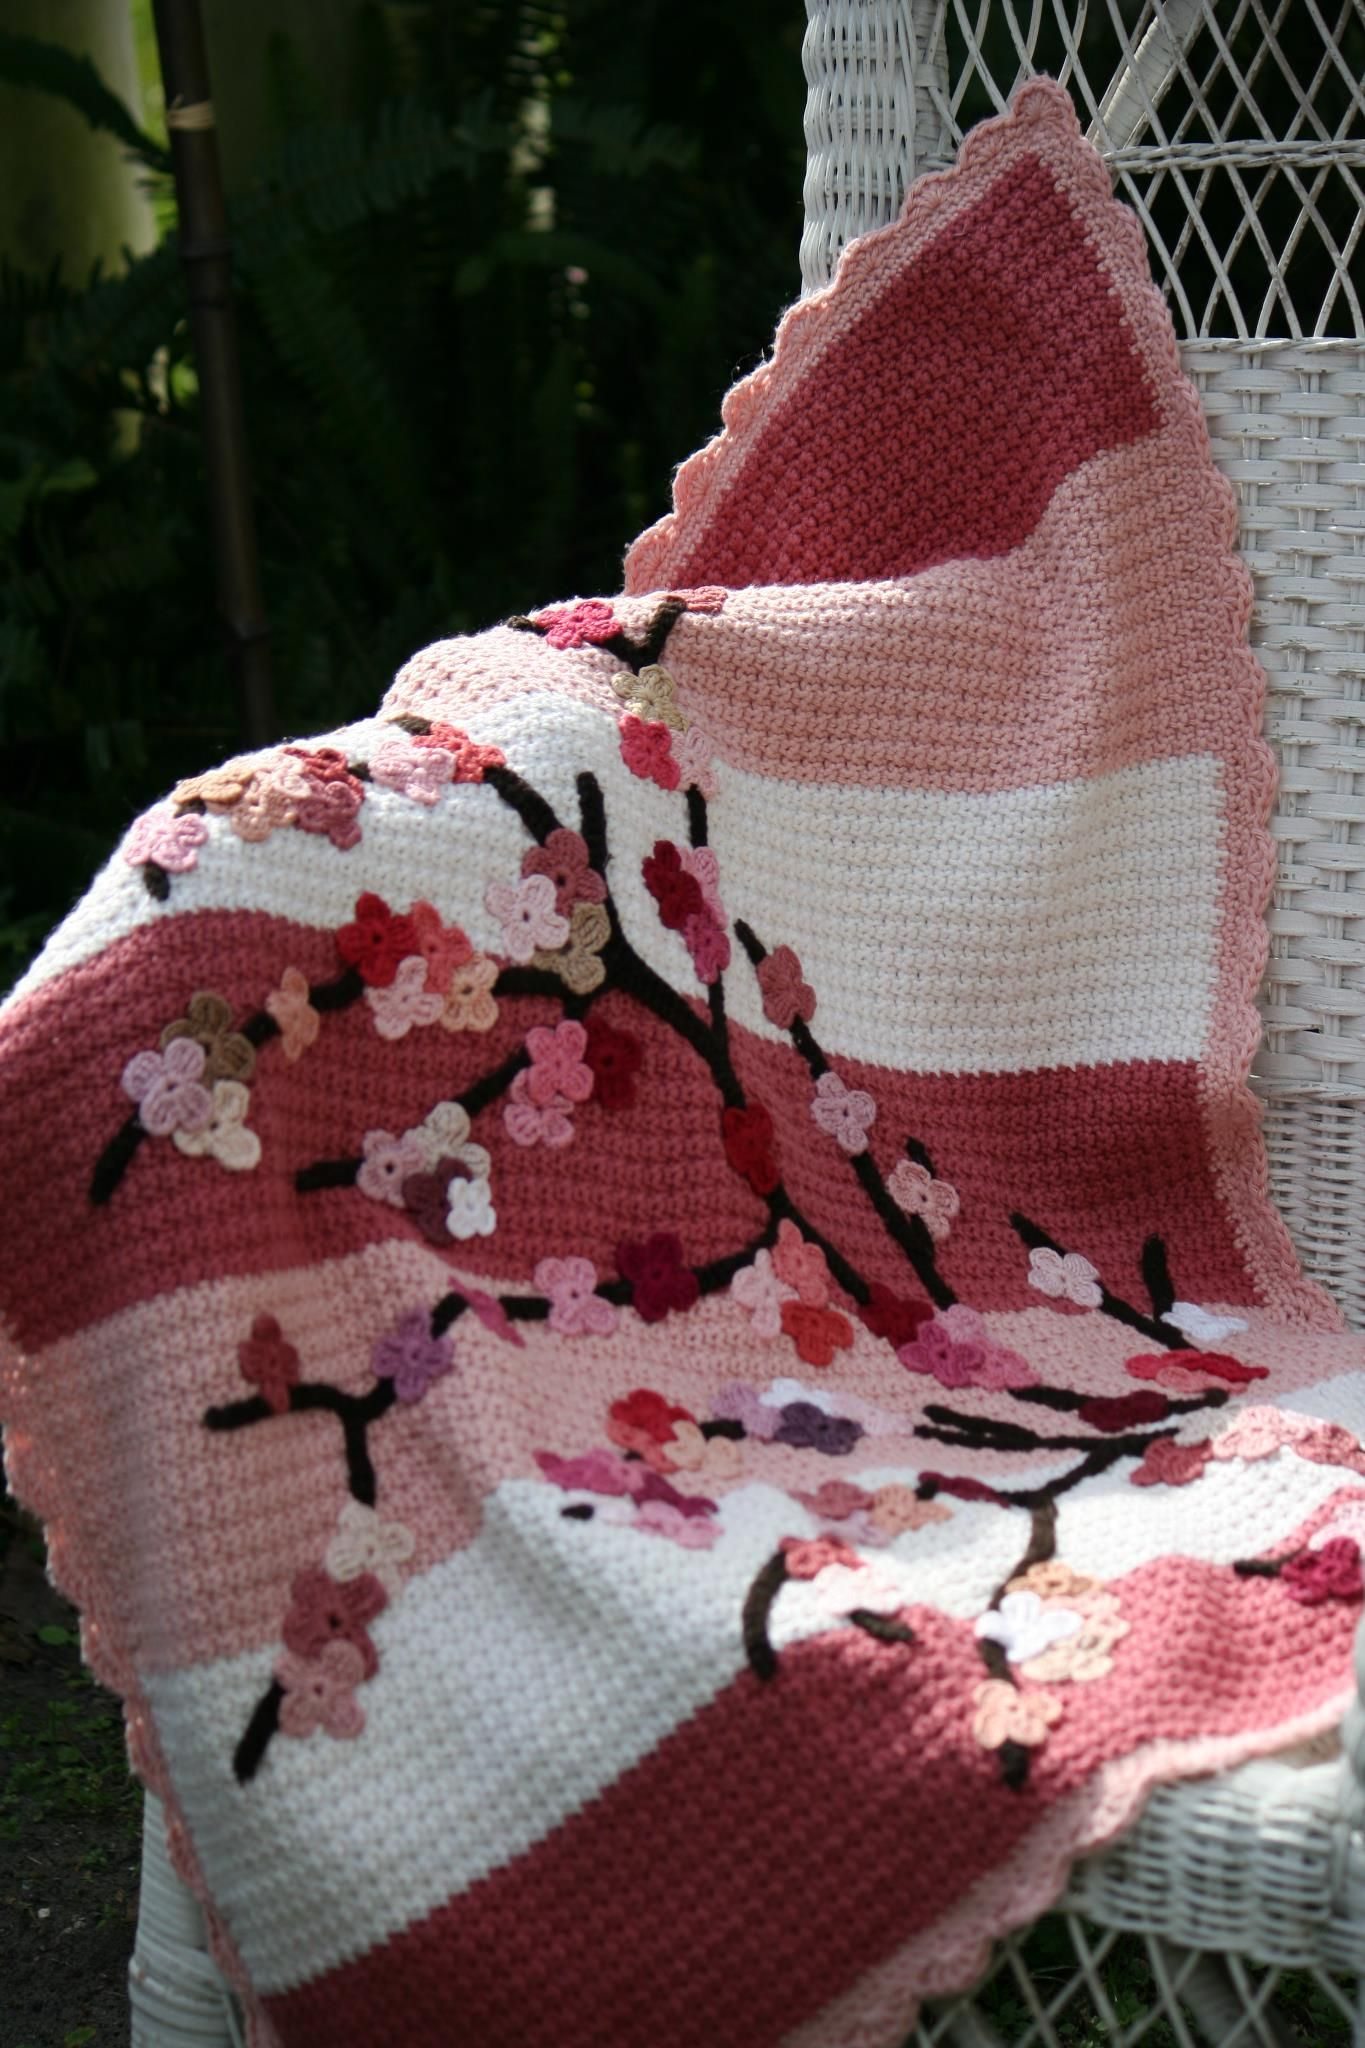 Crochet Cherry Blossom Baby Blanket Tutorial | Crochet projects ...